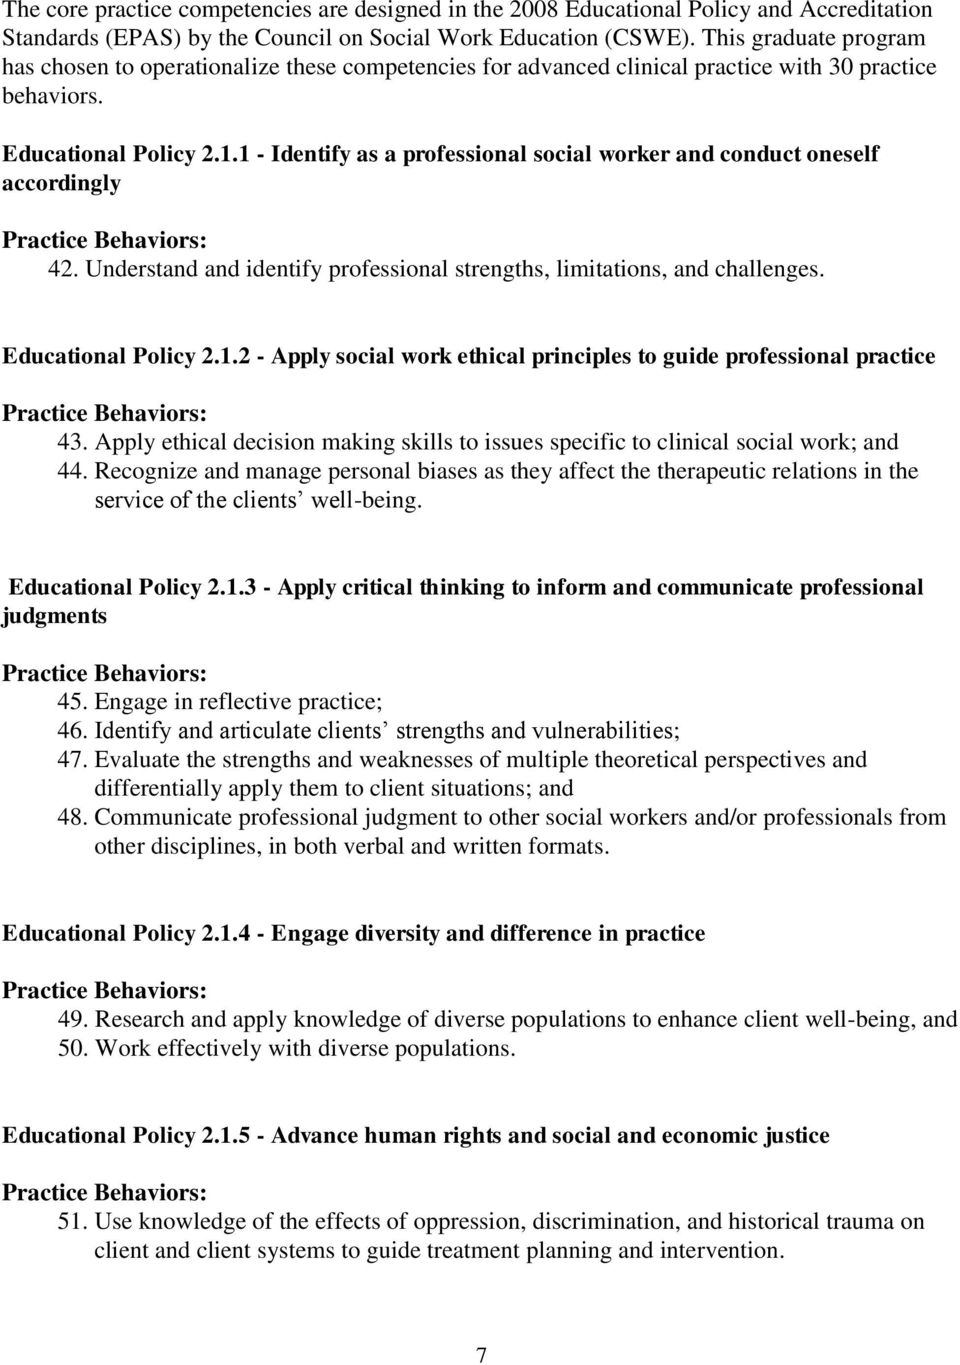 1 - Identify as a professional social worker and conduct oneself accordingly Practice Behaviors: 42. Understand and identify professional strengths, limitations, and challenges. Educational Policy 2.